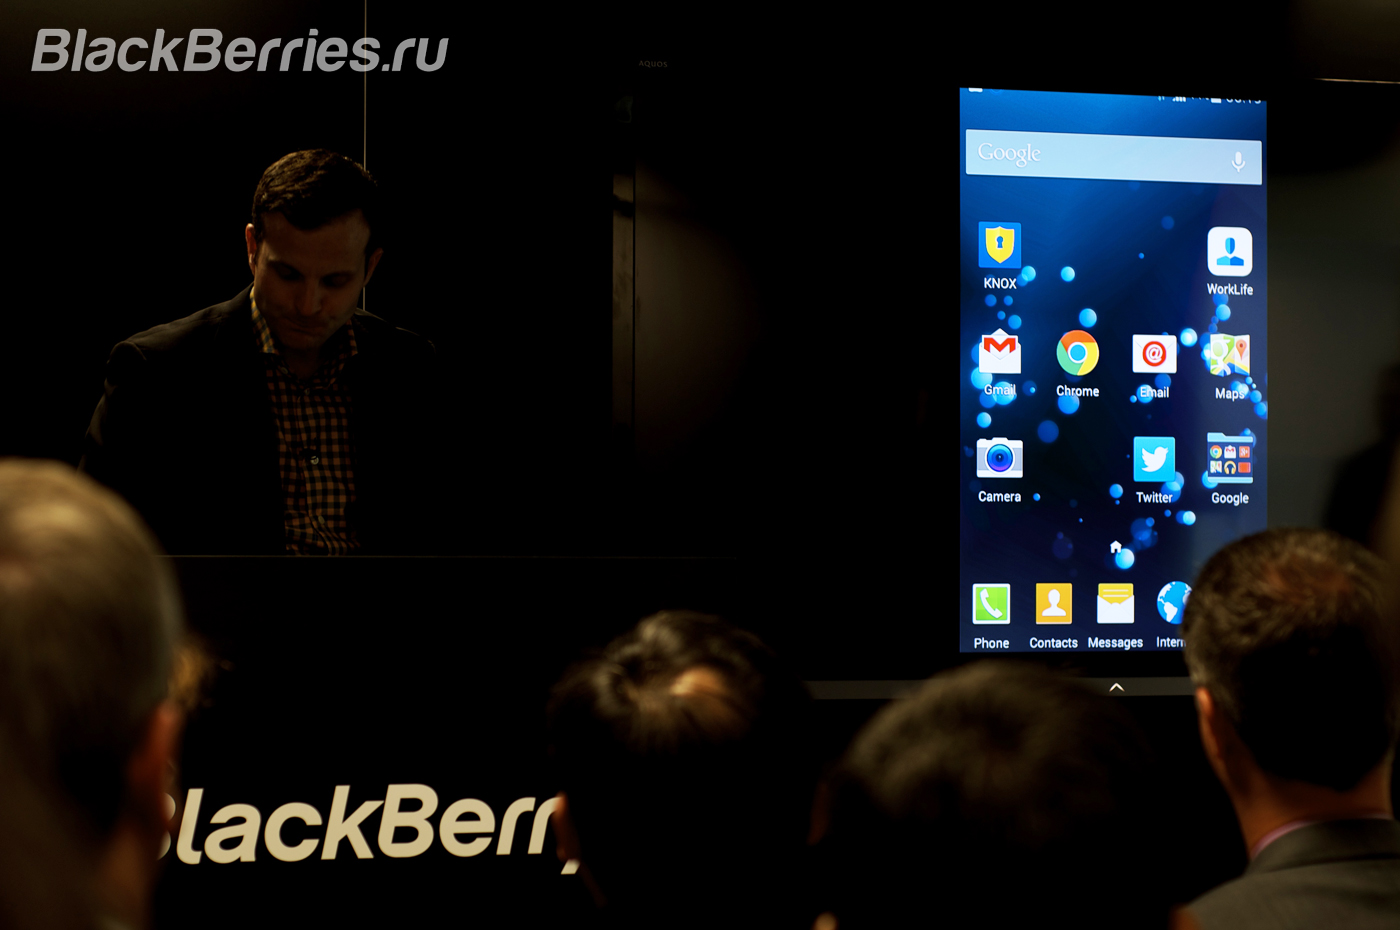 BlackBerry-MWC2015-09